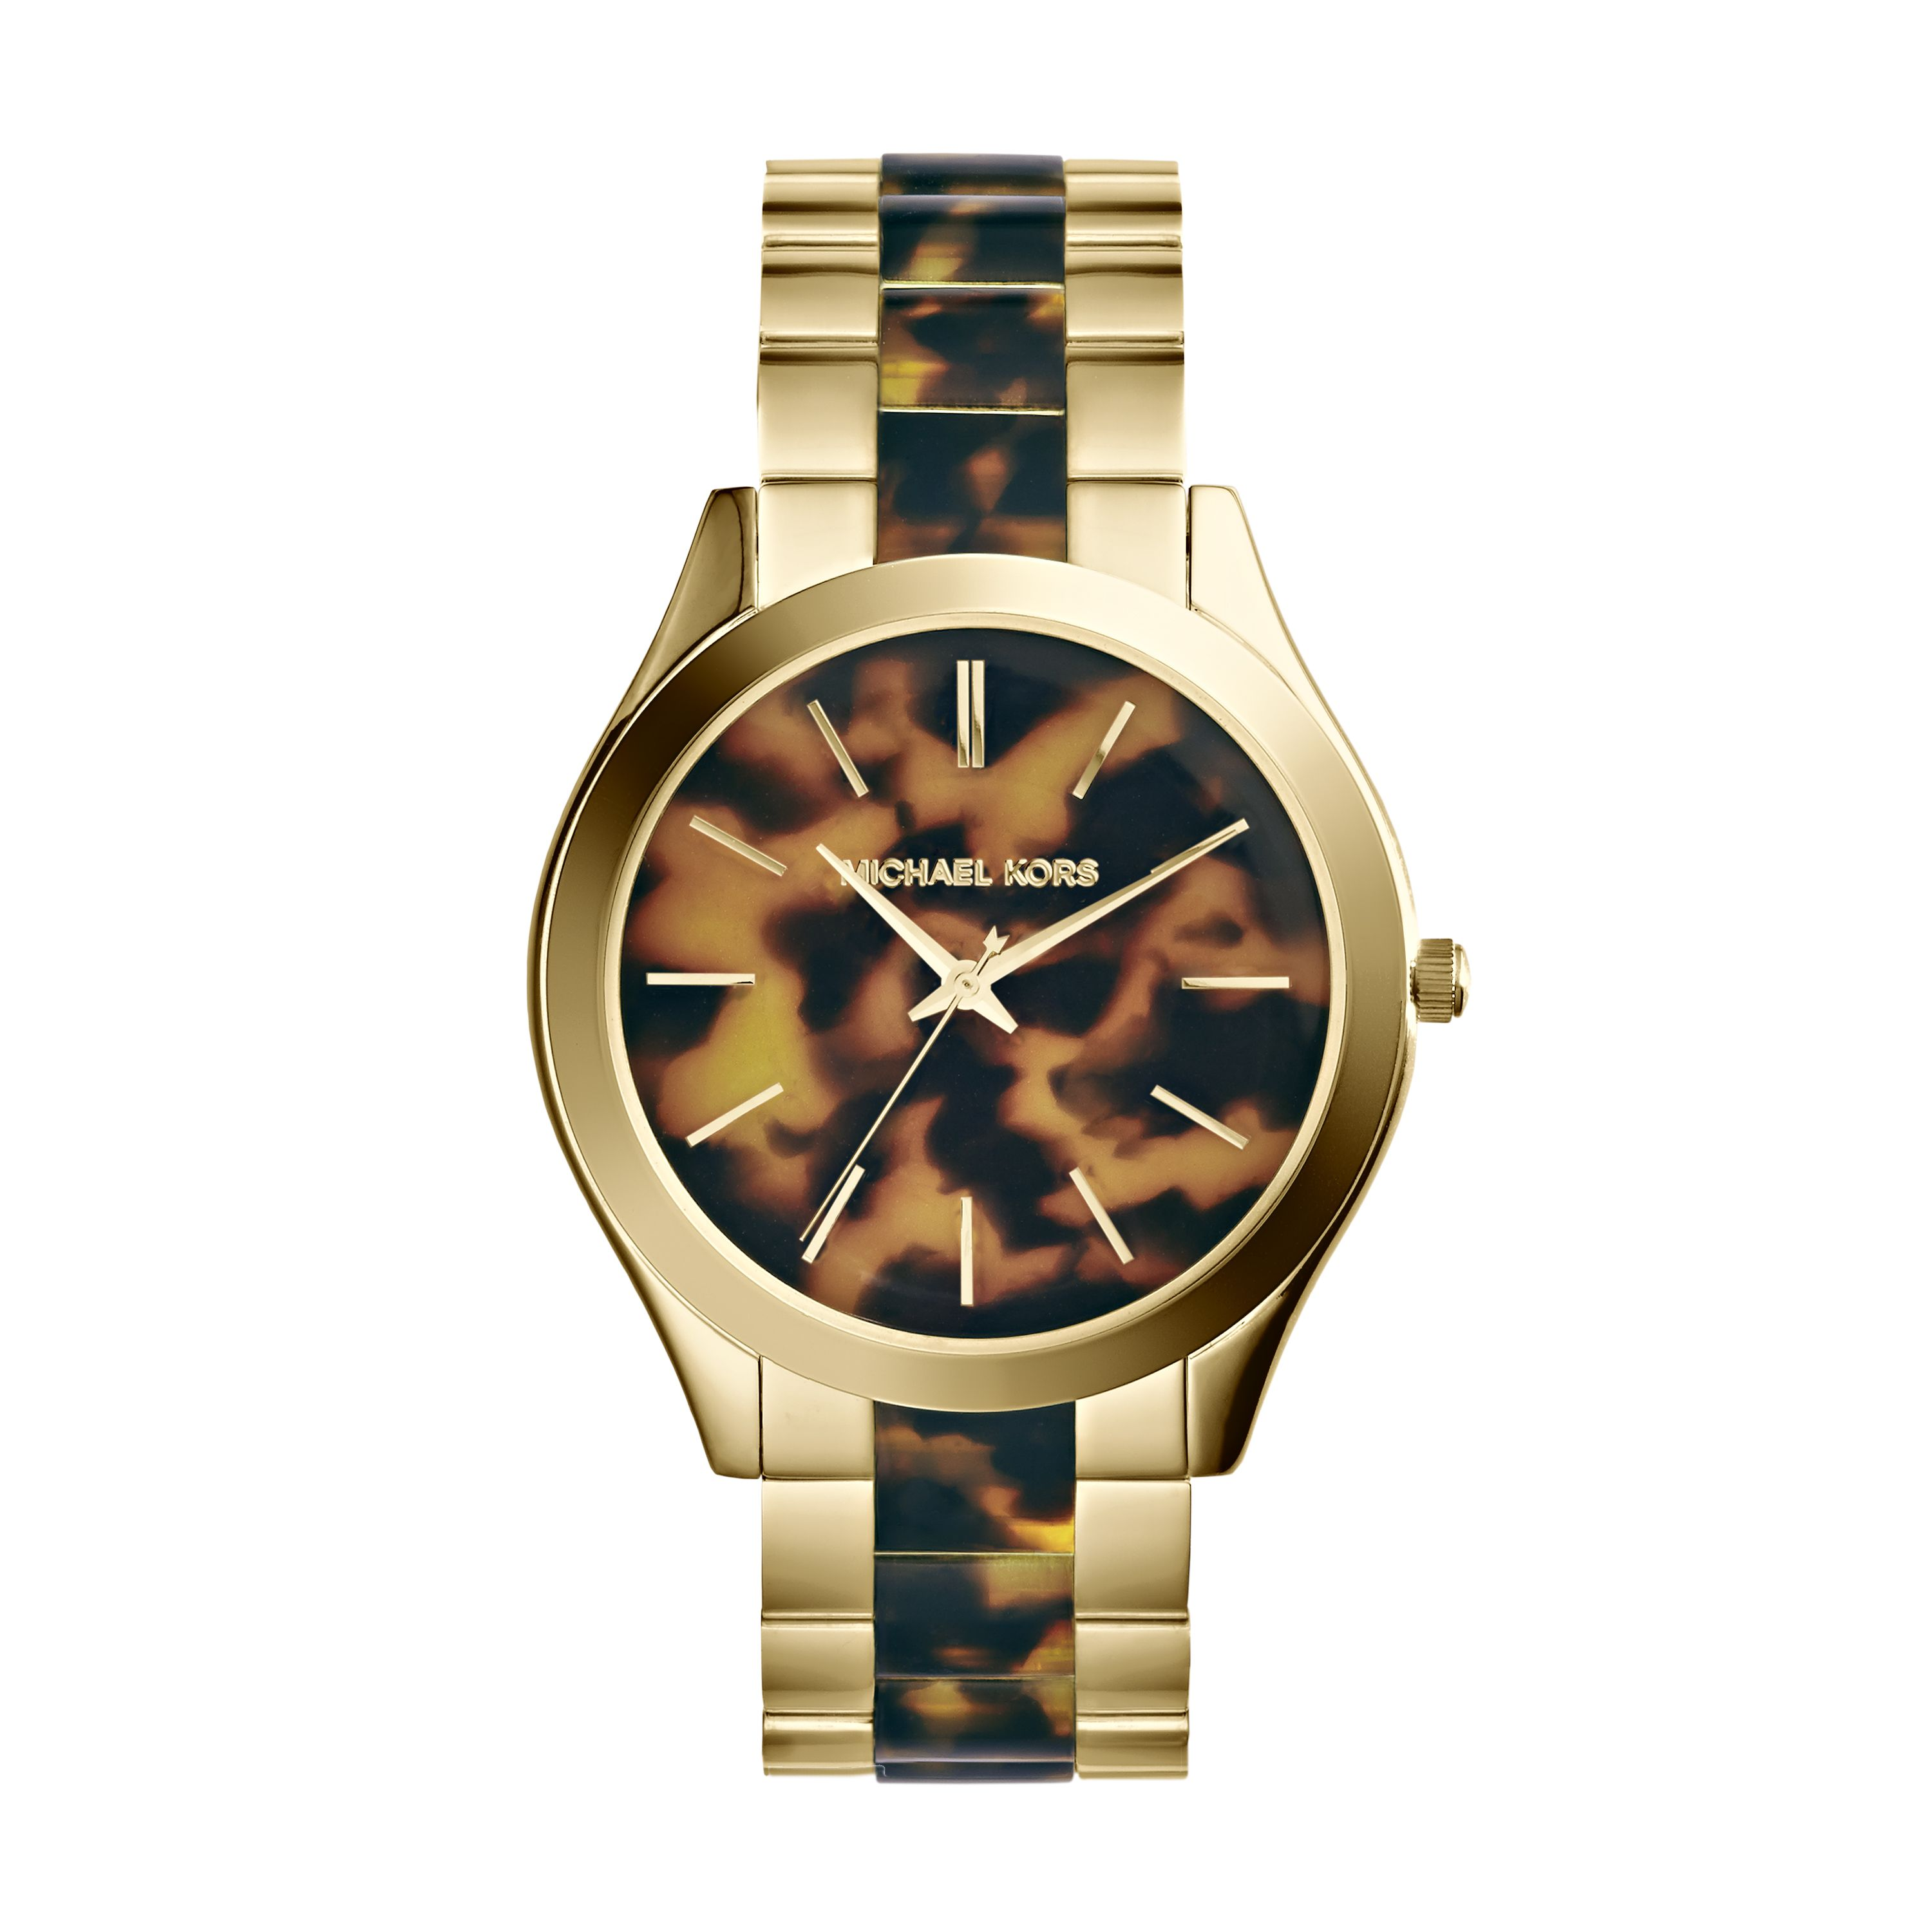 MK4284 METALS tortoise ladies watch